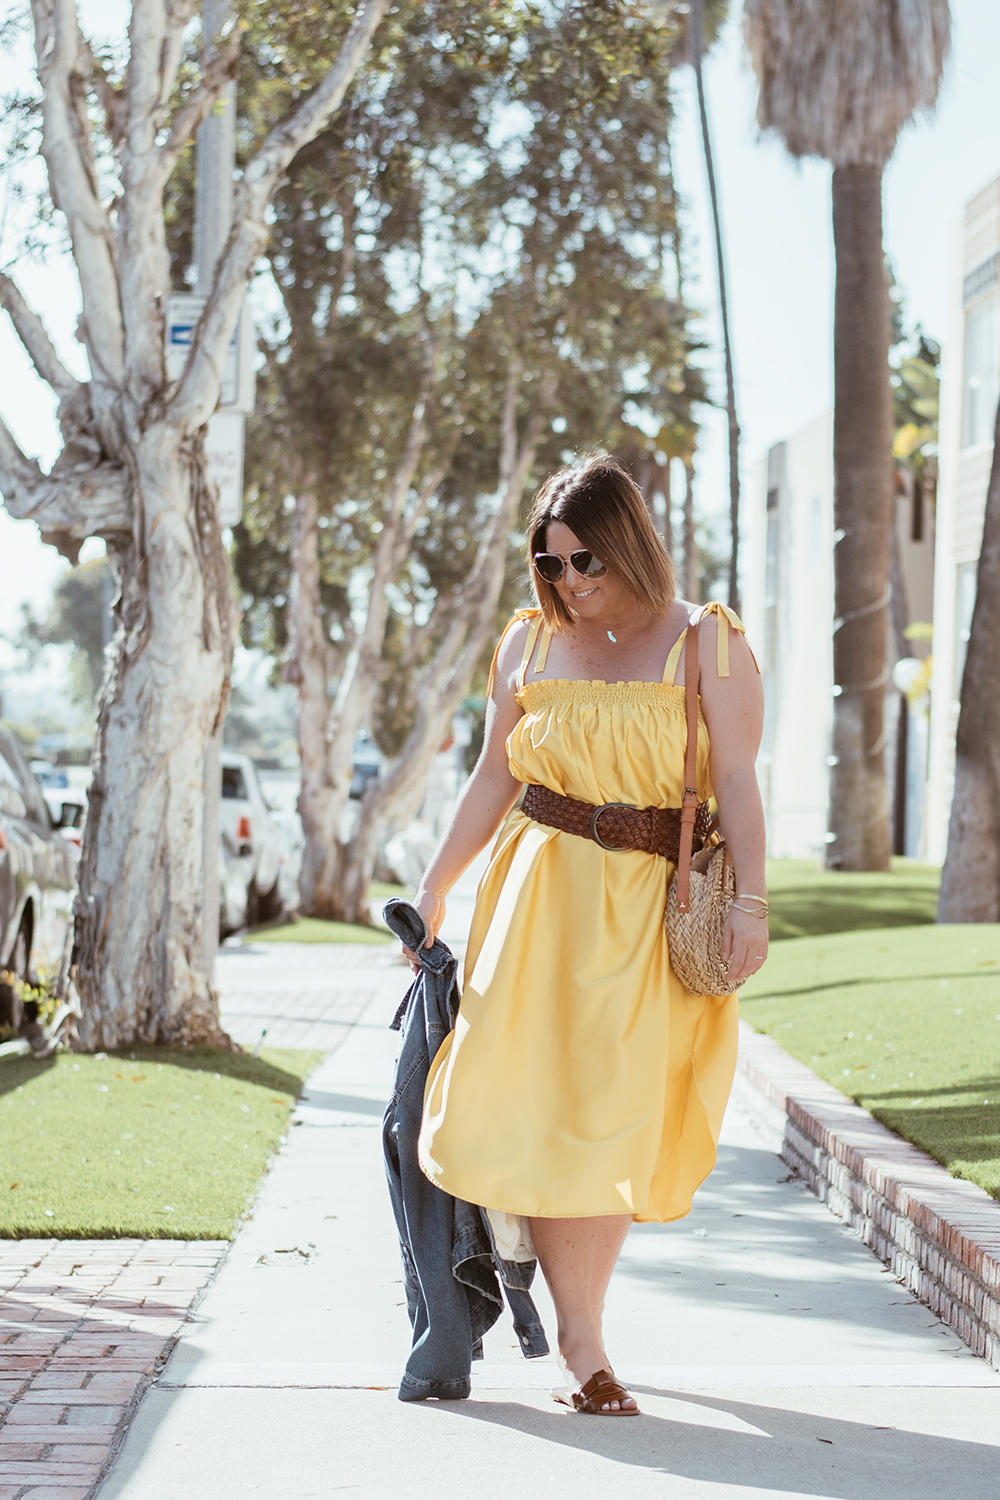 The Best Yellow Dresses for Summer The Biggest Trends for 2018 Barefoot in LA Fashion Blog Style Ideas Outfits 0175